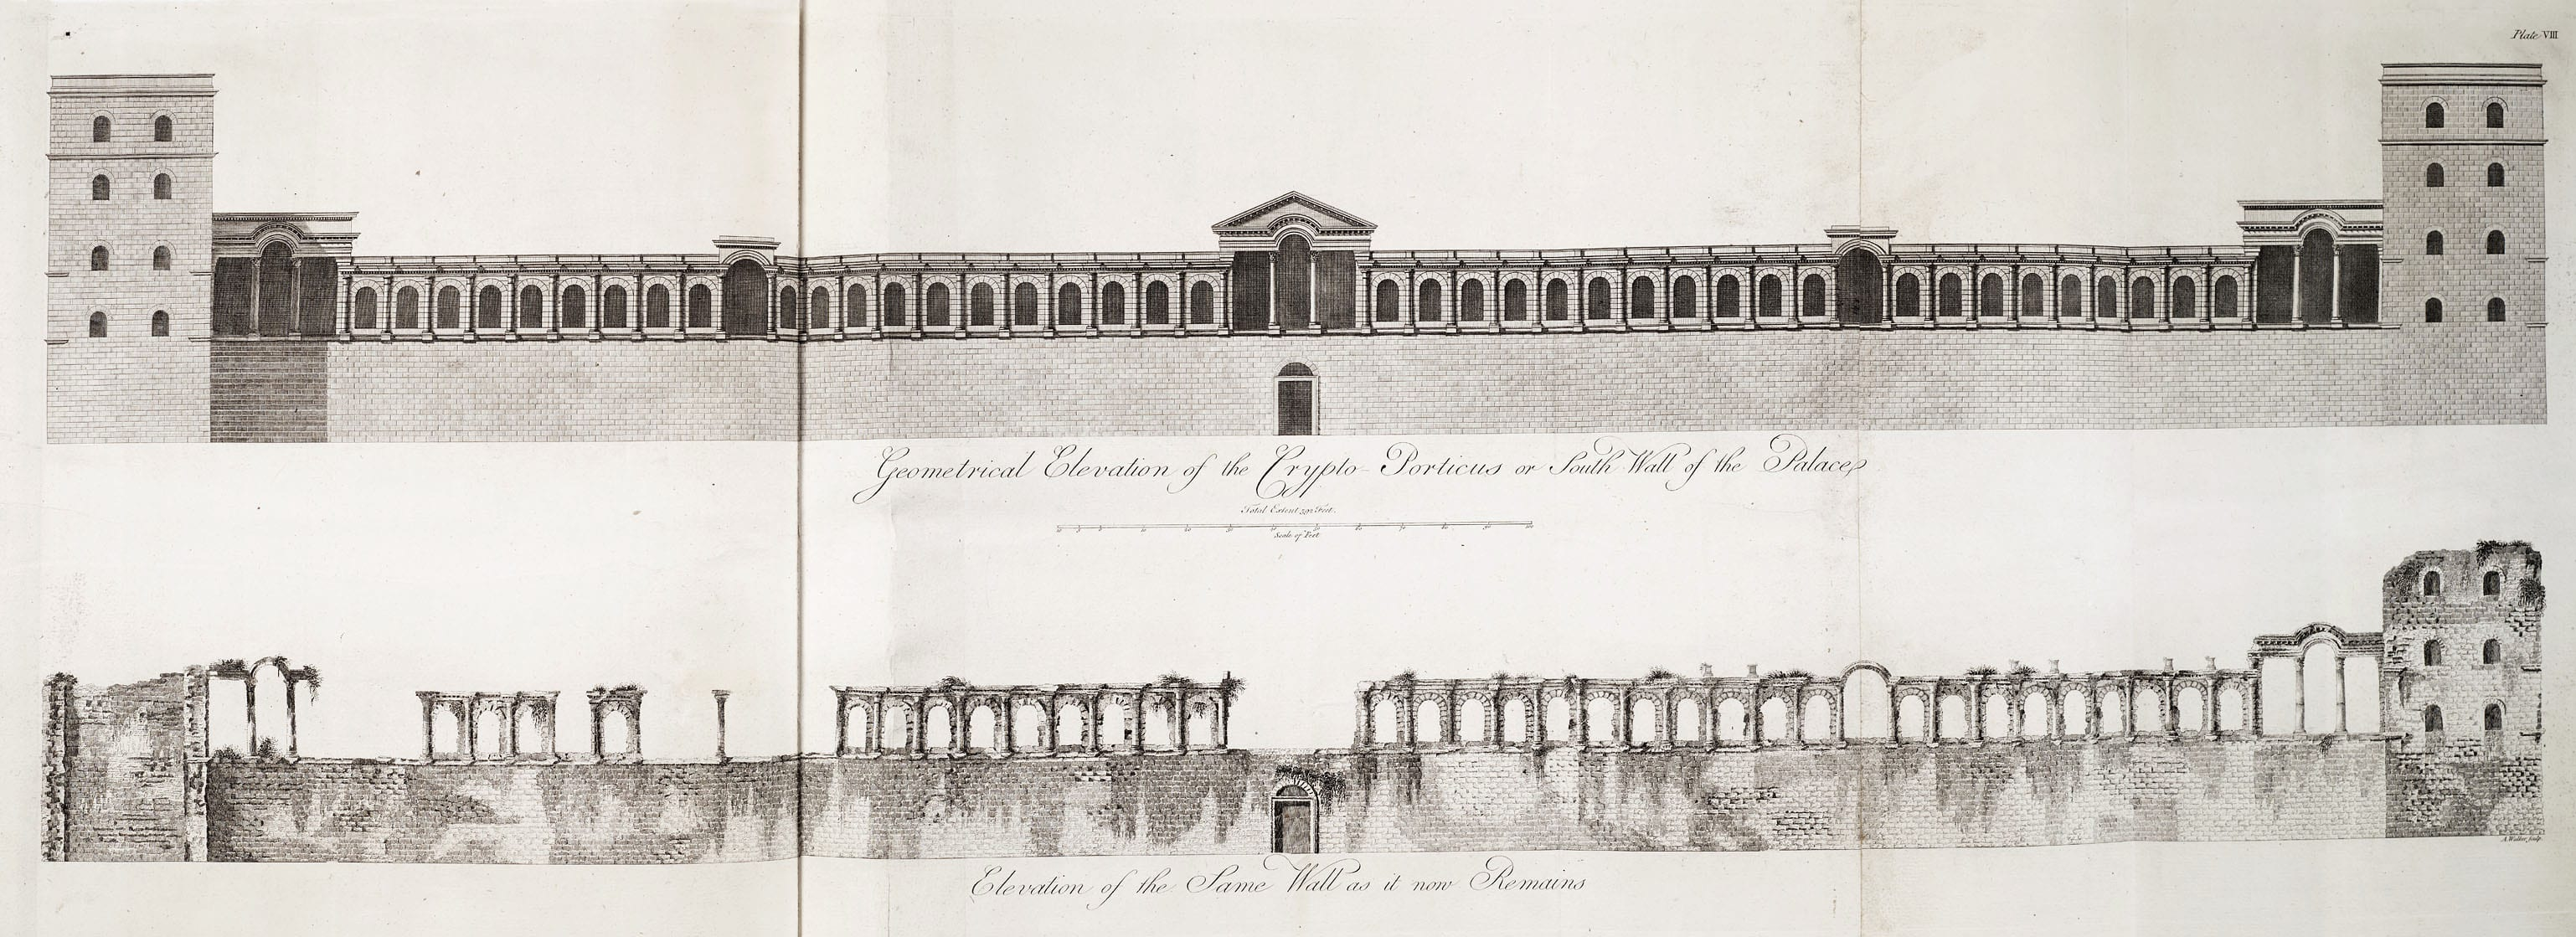 3, 4 Adam office design for the riverfront elevation of the Adelphi development (Sir John Soane's Museum, Adam vol. 32/10), and elevations of the sea wall of Diocletian's Palace (Plate VIII from Adam's Ruins of the Palace of the Emperor Diocletian)